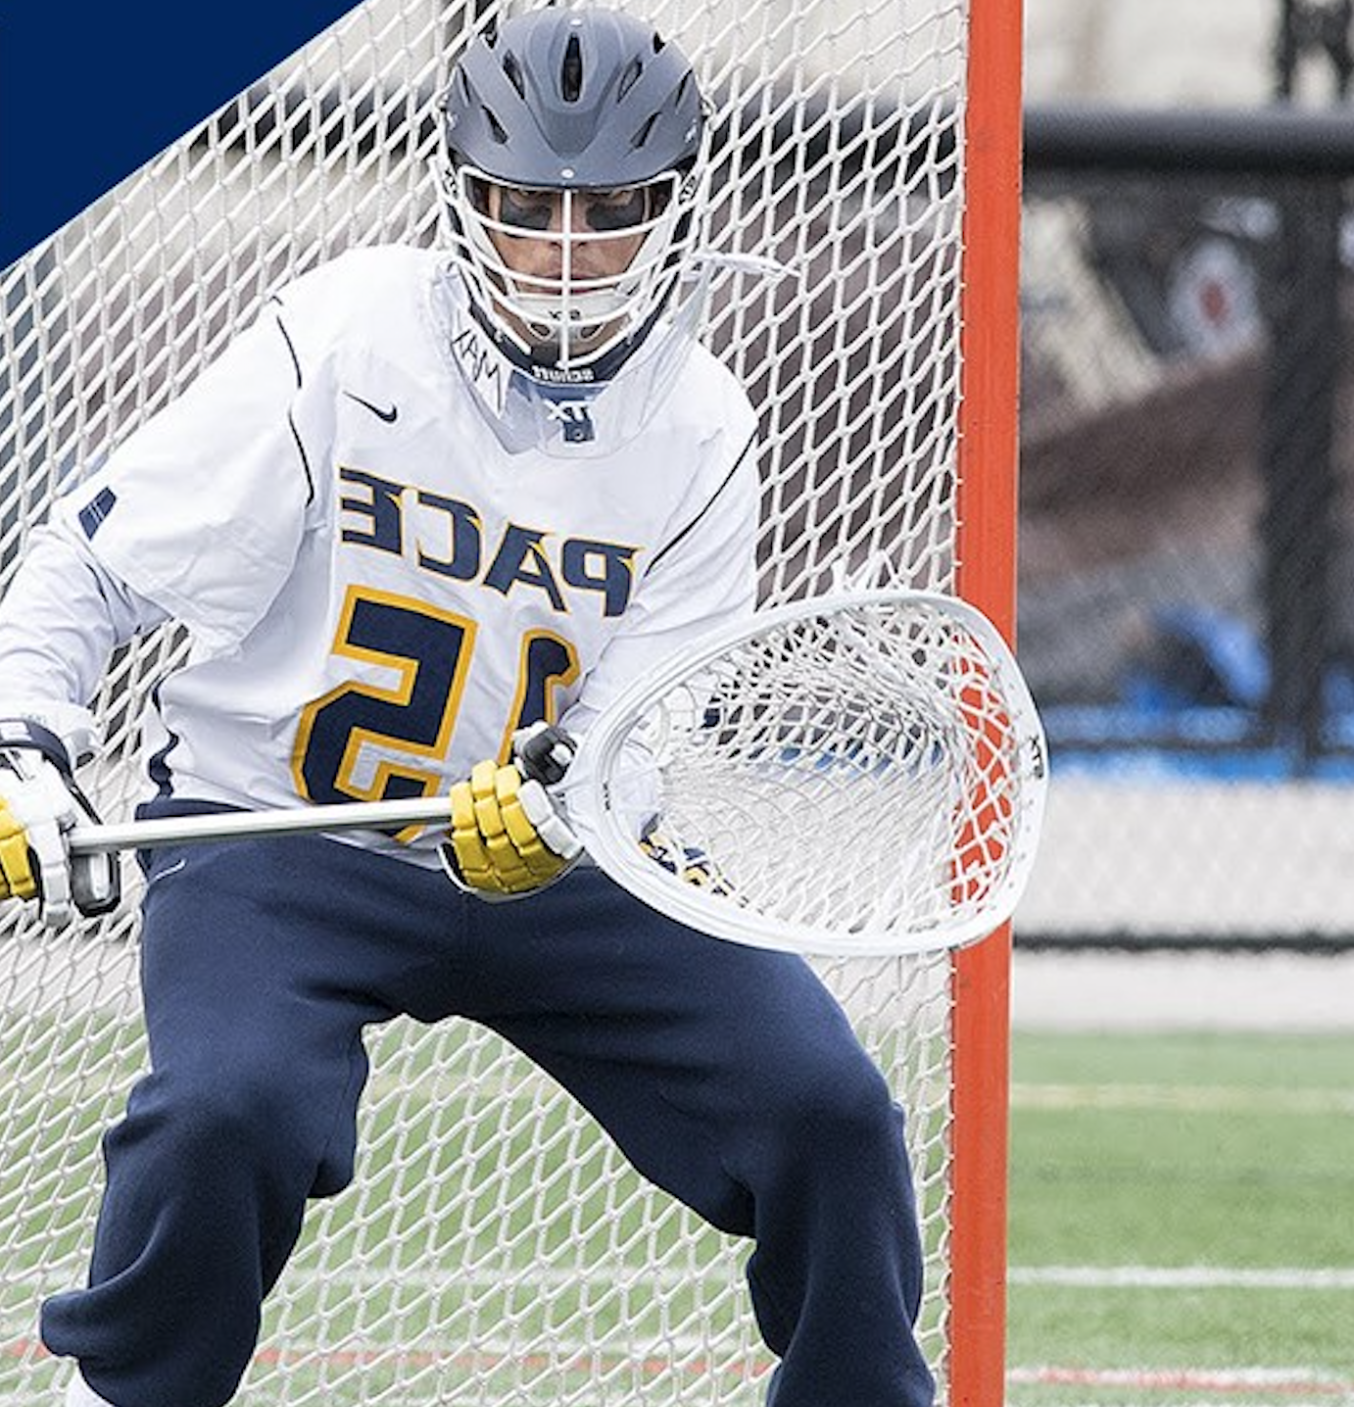 Ragusa was named NE10 Rookie of the Week on the week of March 5th, 2018.